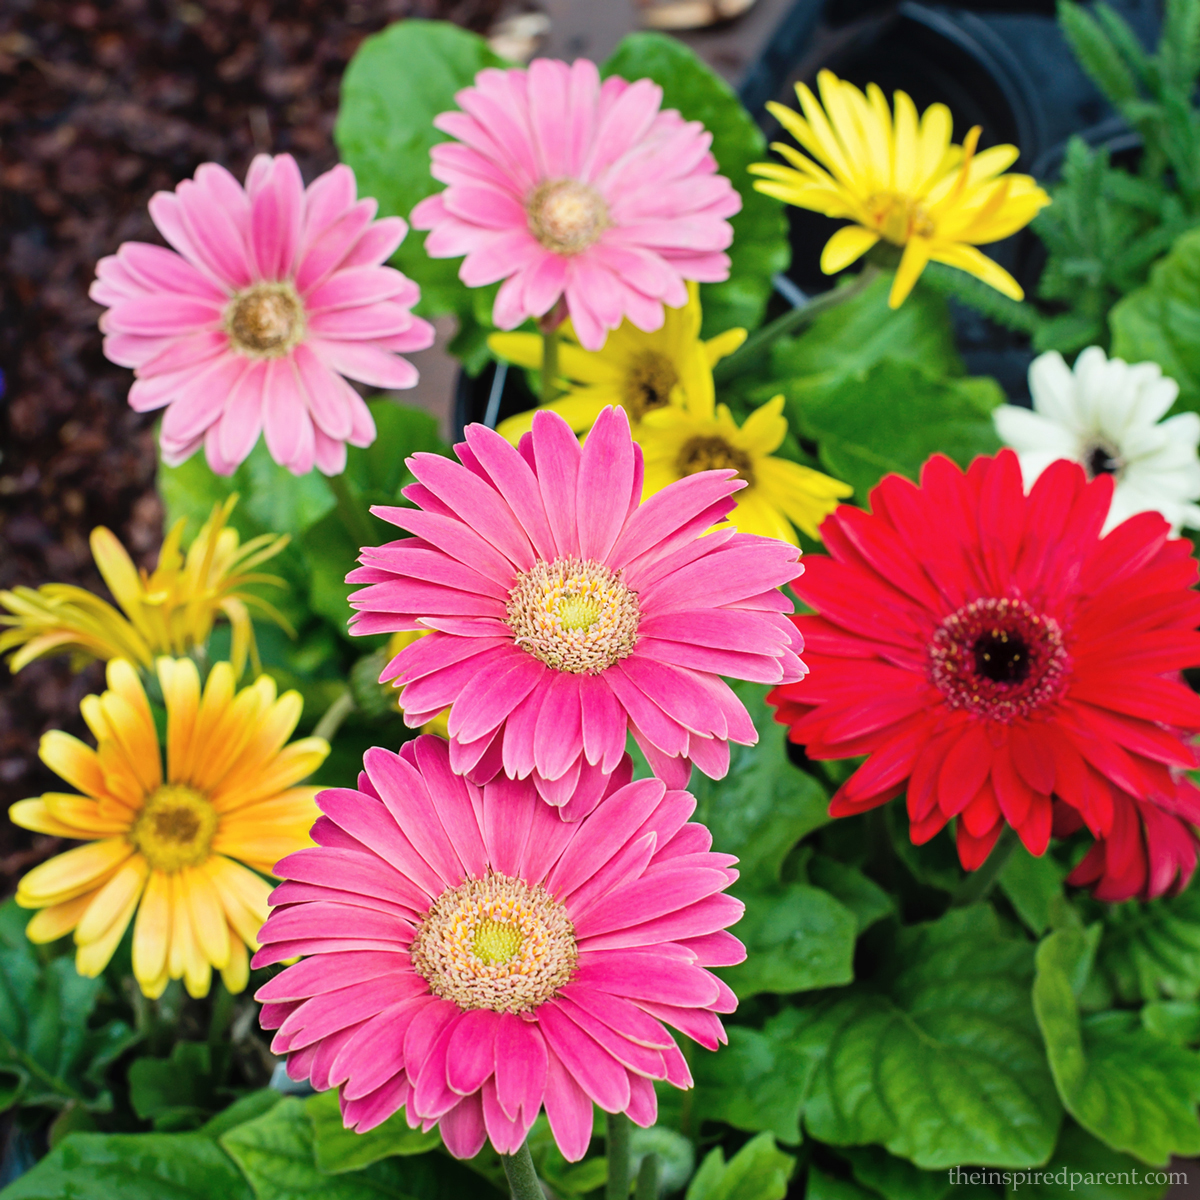 Colorful containing the inspired parent quite possibly my favorites gerbera daisies are such happy little flowers weve had great success planting these in containers theyre a great element izmirmasajfo